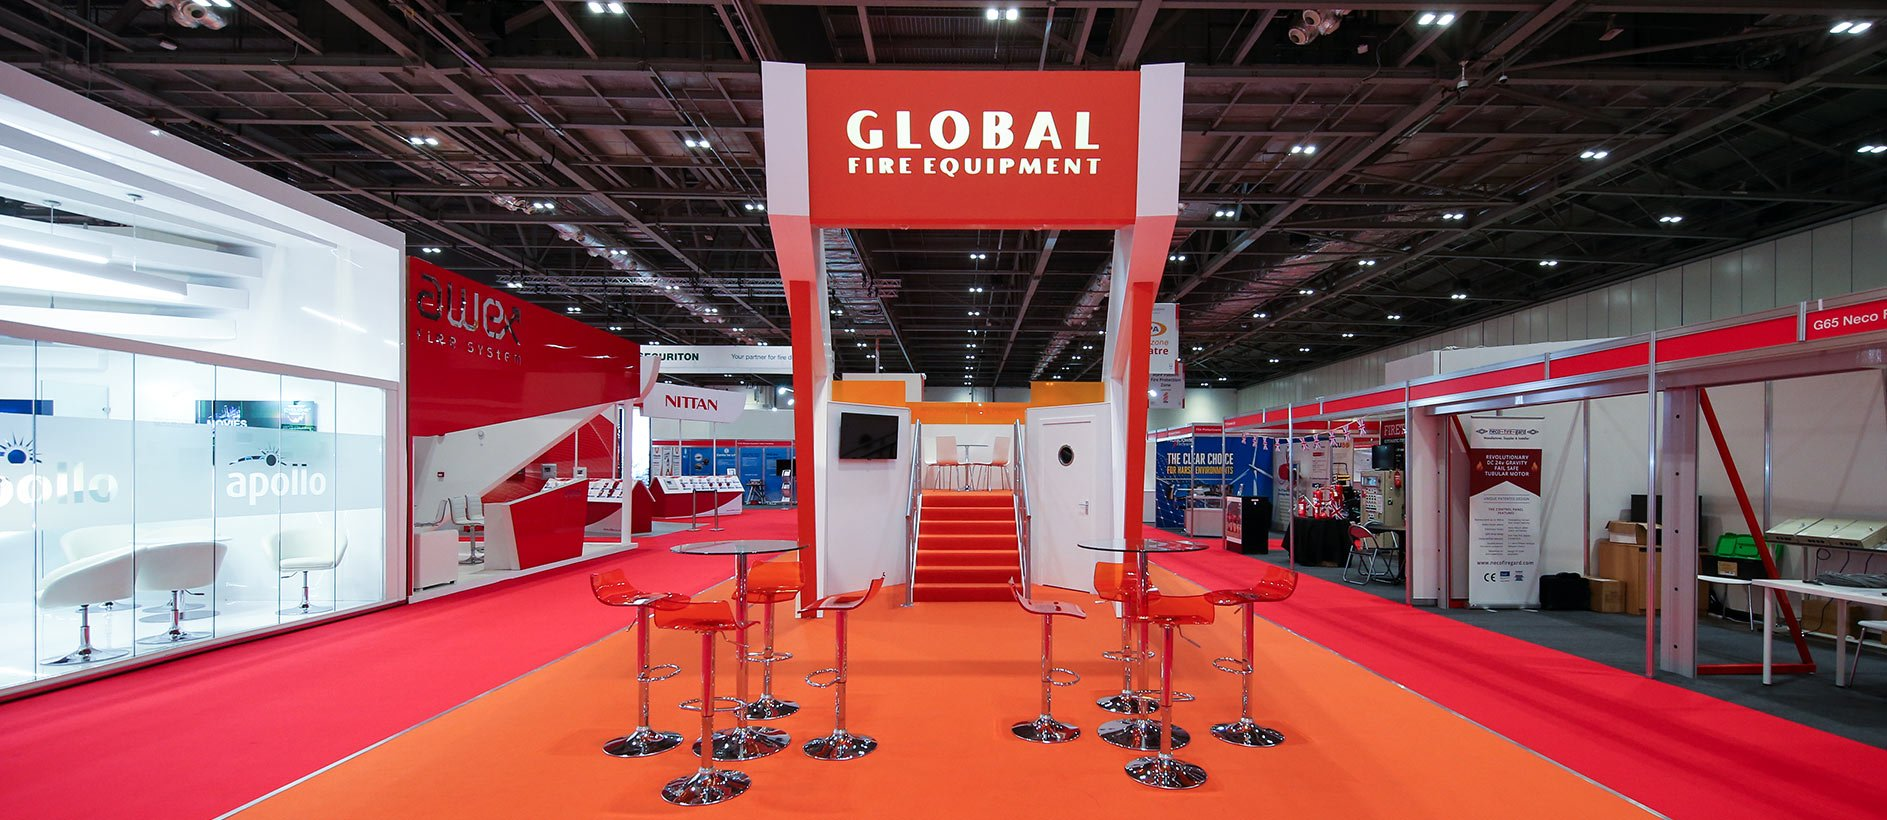 Exhibition stand design with custom furniture and flooring